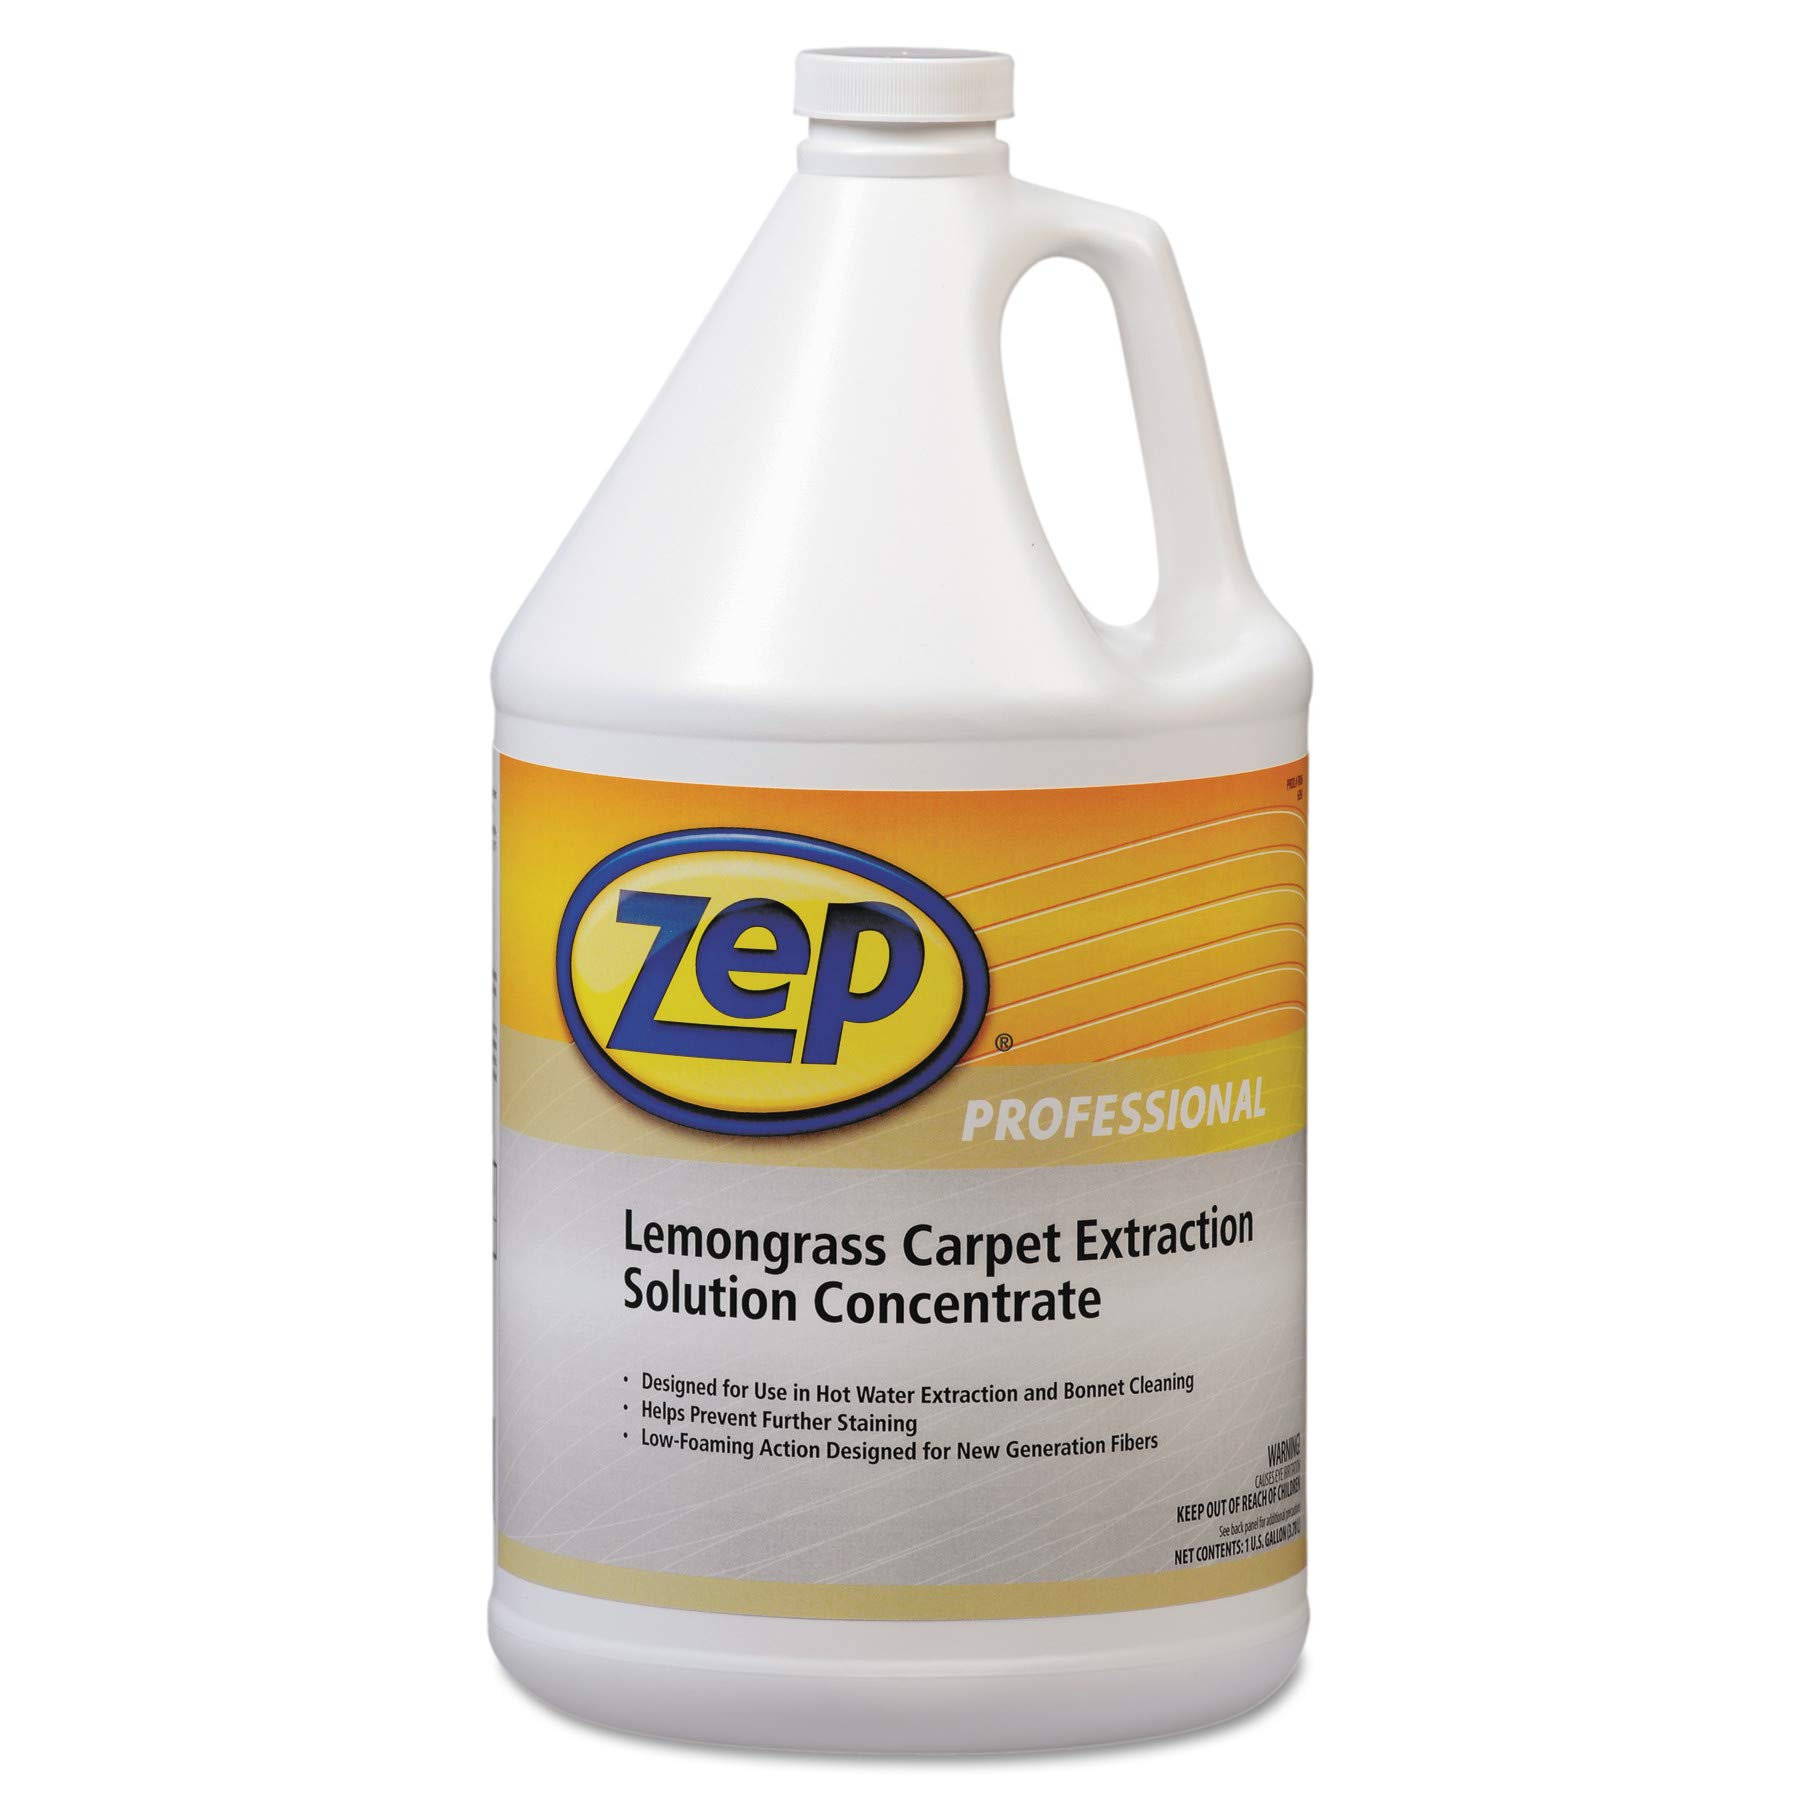 Zep Professional Carpet Extraction Cleaner, Lemongrass, 1gal Bottle (Lemon) by Zep Commercial (Image #1)